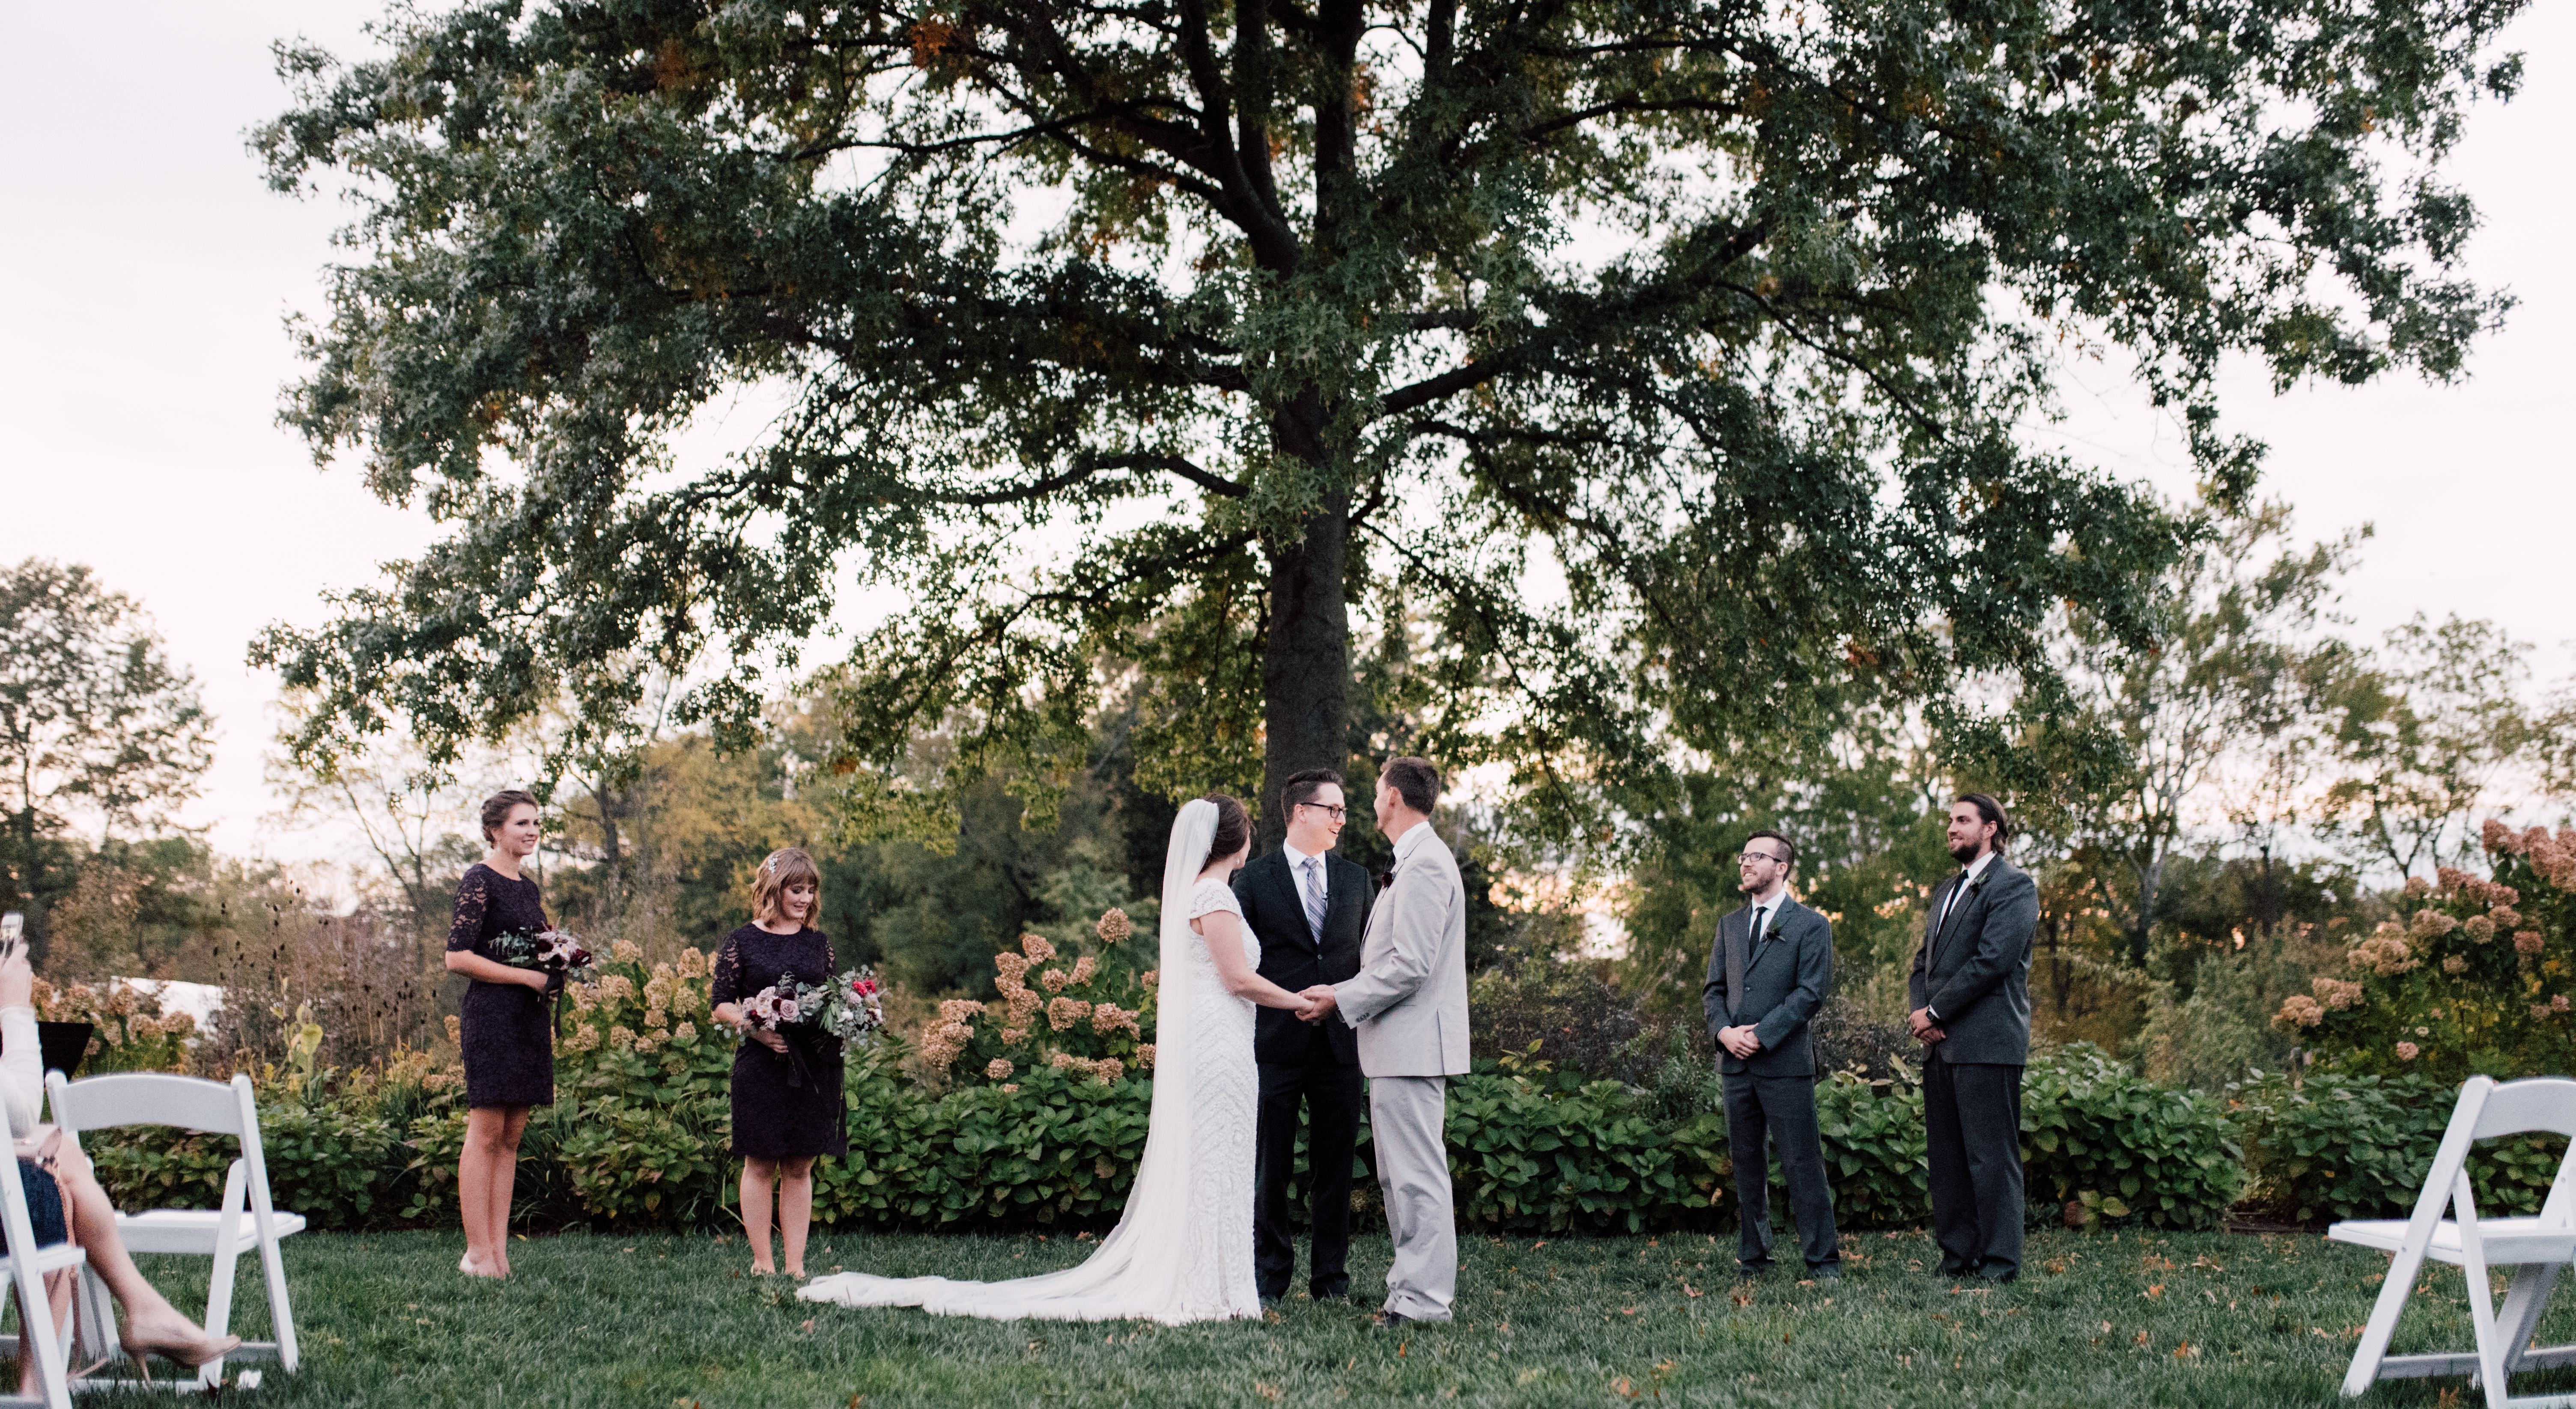 outdoor wedding ceremonies - photo by Victoria Isabel Photography http://ruffledblog.com/fall-wedding-inspiration-from-the-big-fake-wedding